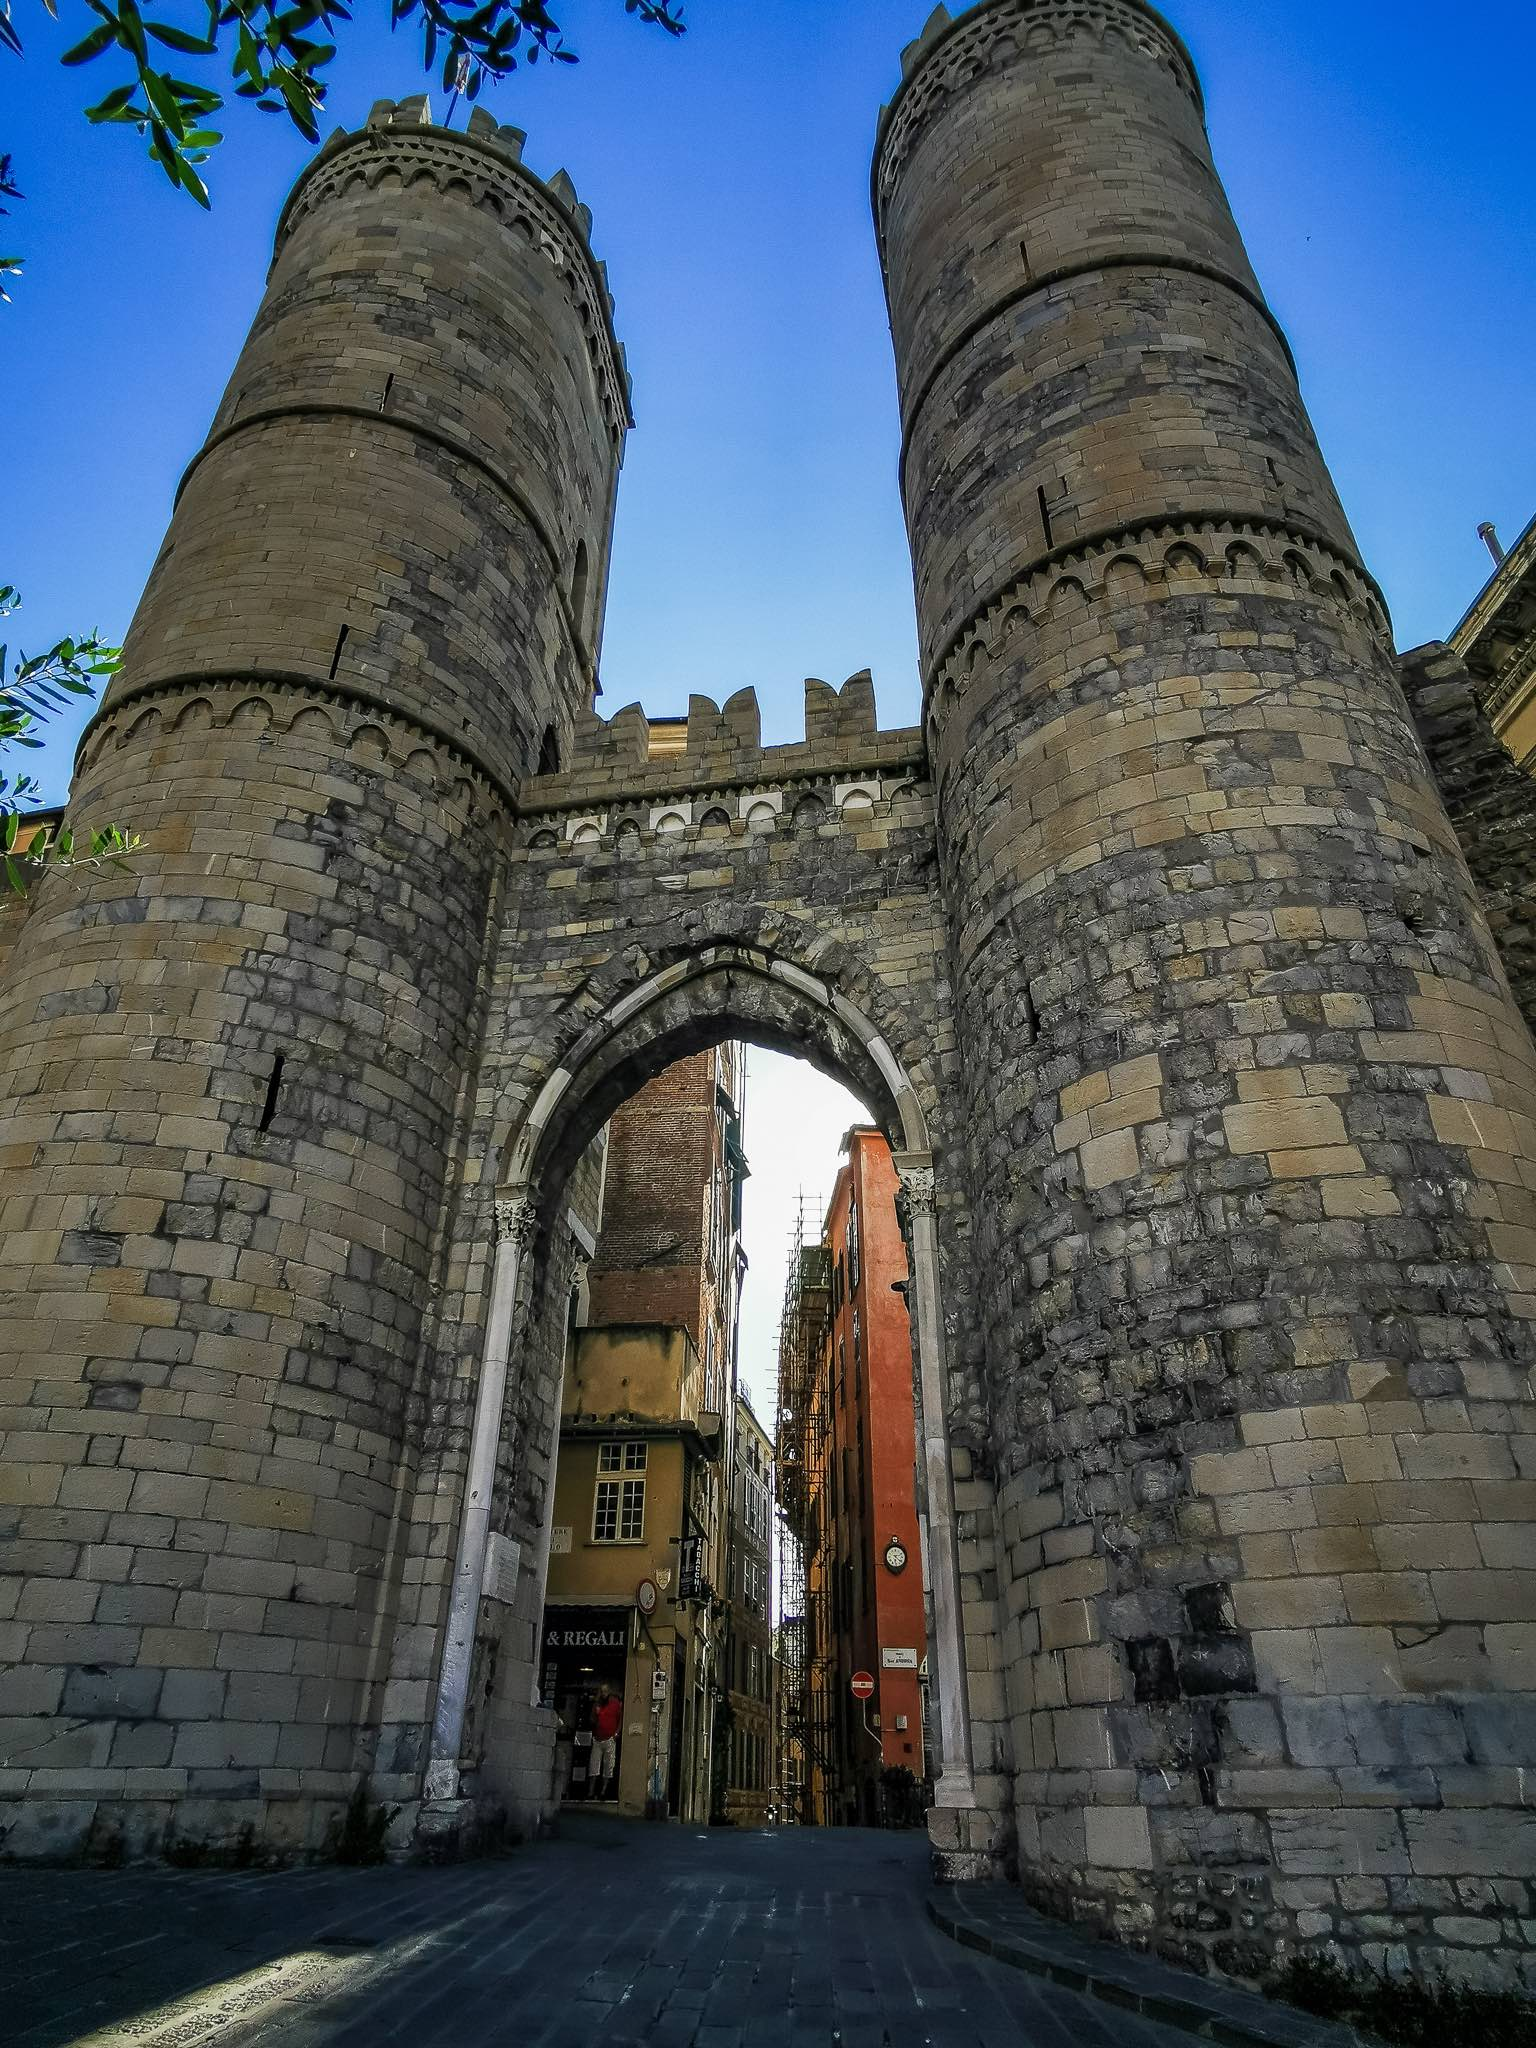 Porta Soprana, the entrance gate to Genoa